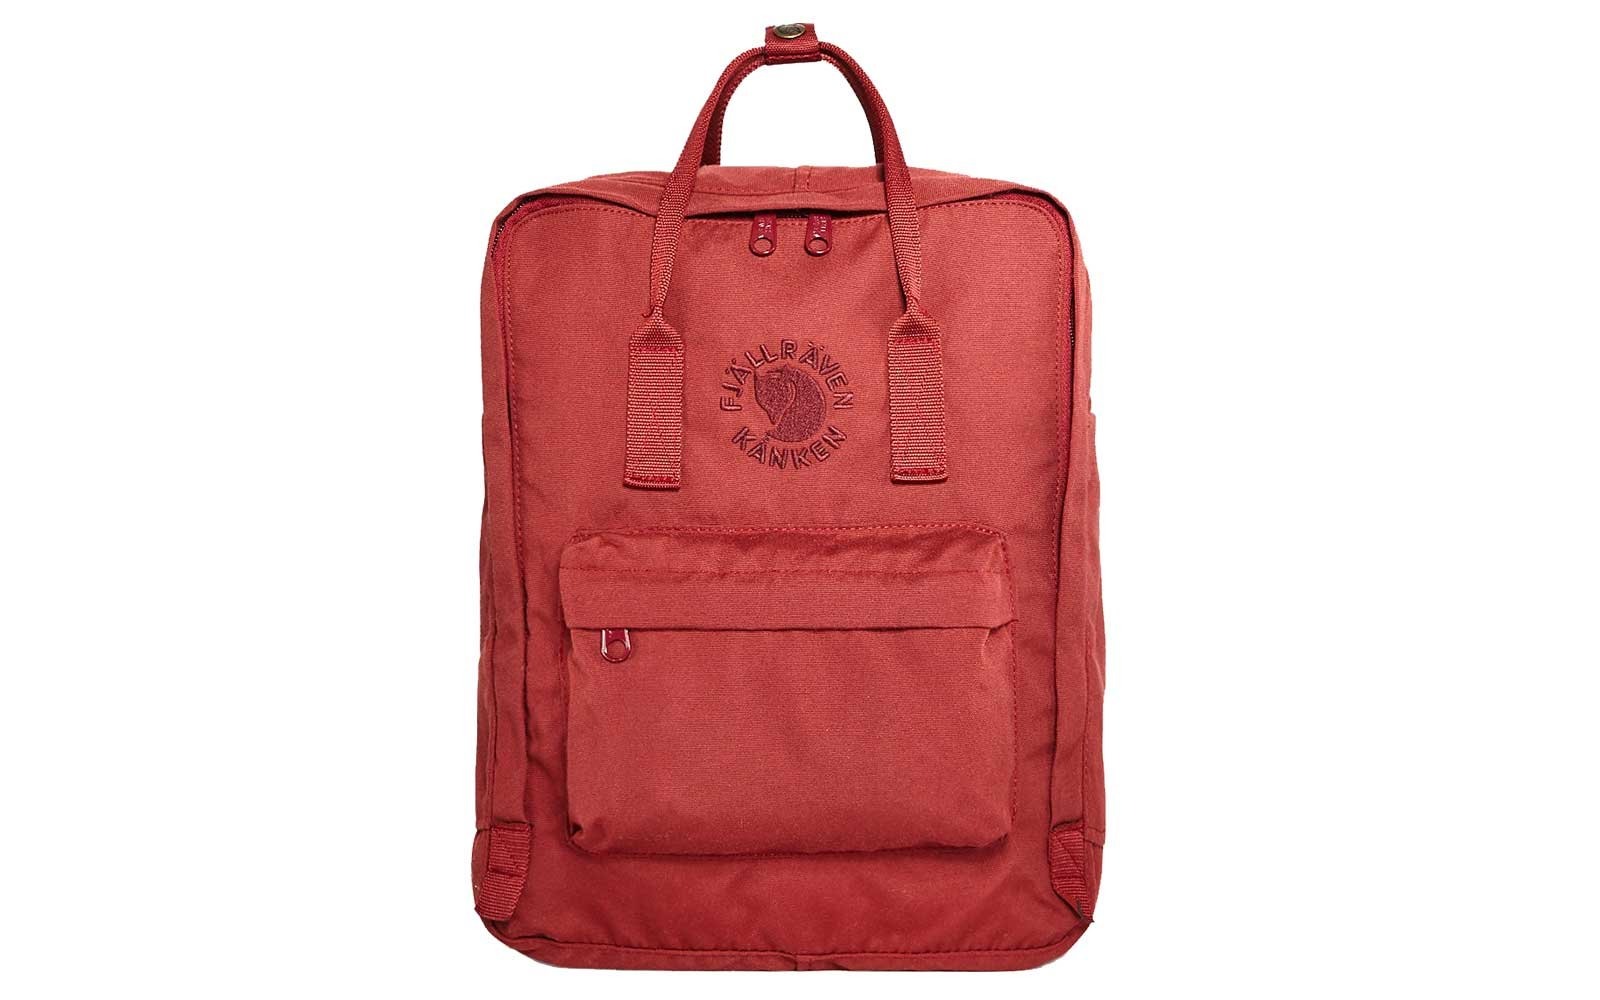 f440c8c4cb Fjallraven Water-resistant Re-Kanken Backpack